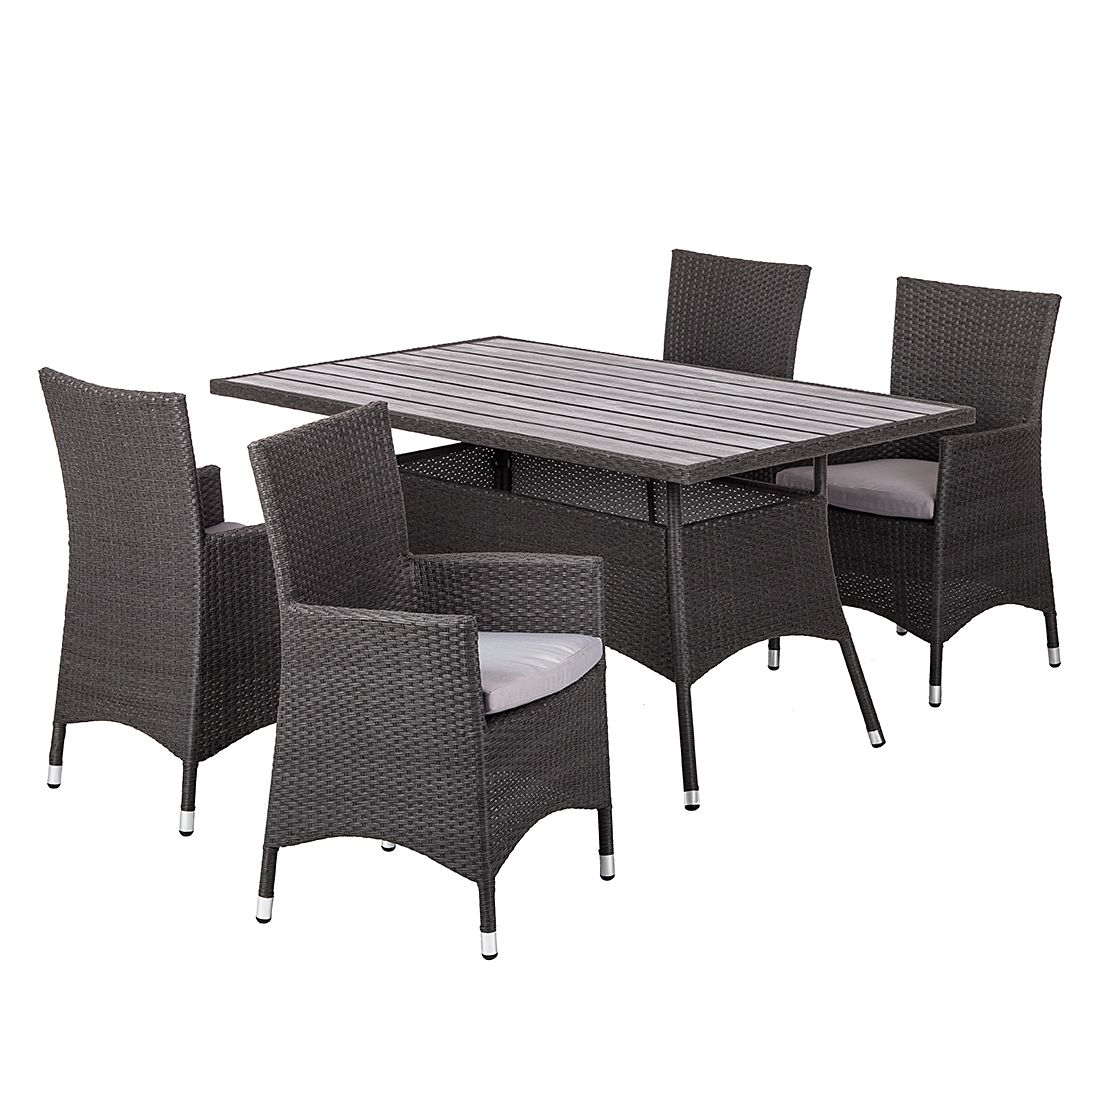 essgruppe paradise lounge i 5 teilig polyrattan grau kings garden g nstig online kaufen. Black Bedroom Furniture Sets. Home Design Ideas